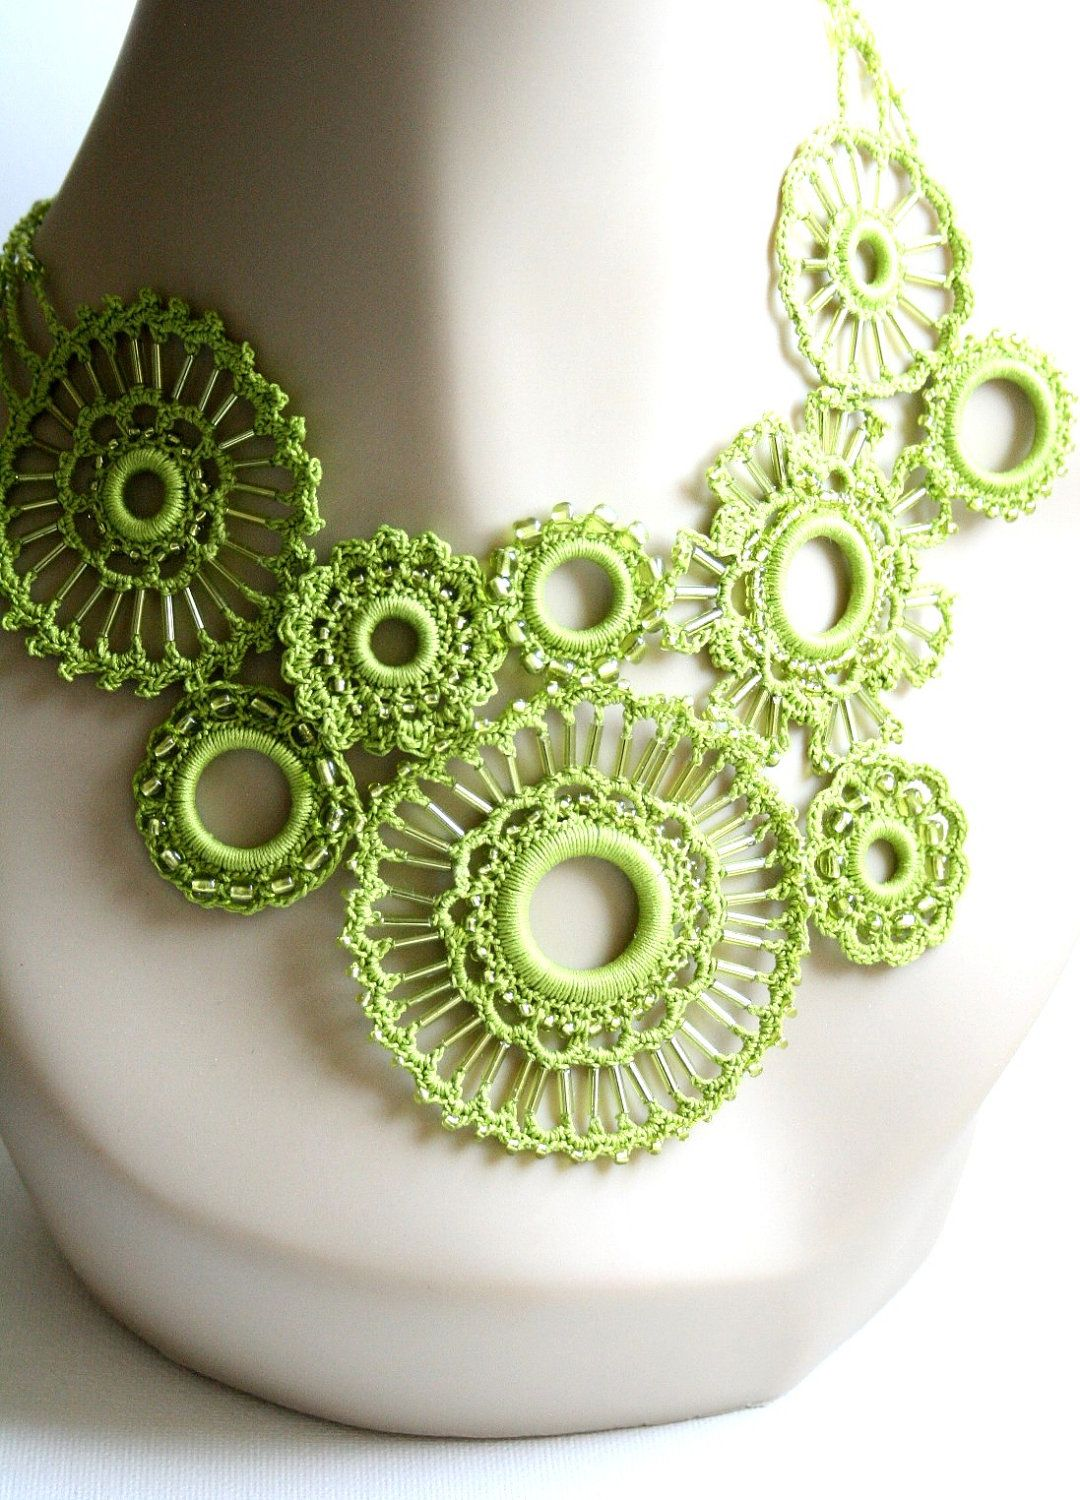 Spring Green Crocheted Beaded Necklace Featured in Vogueknitting Crochet 2012 Special Collector's Issue. $65.00, via Etsy.